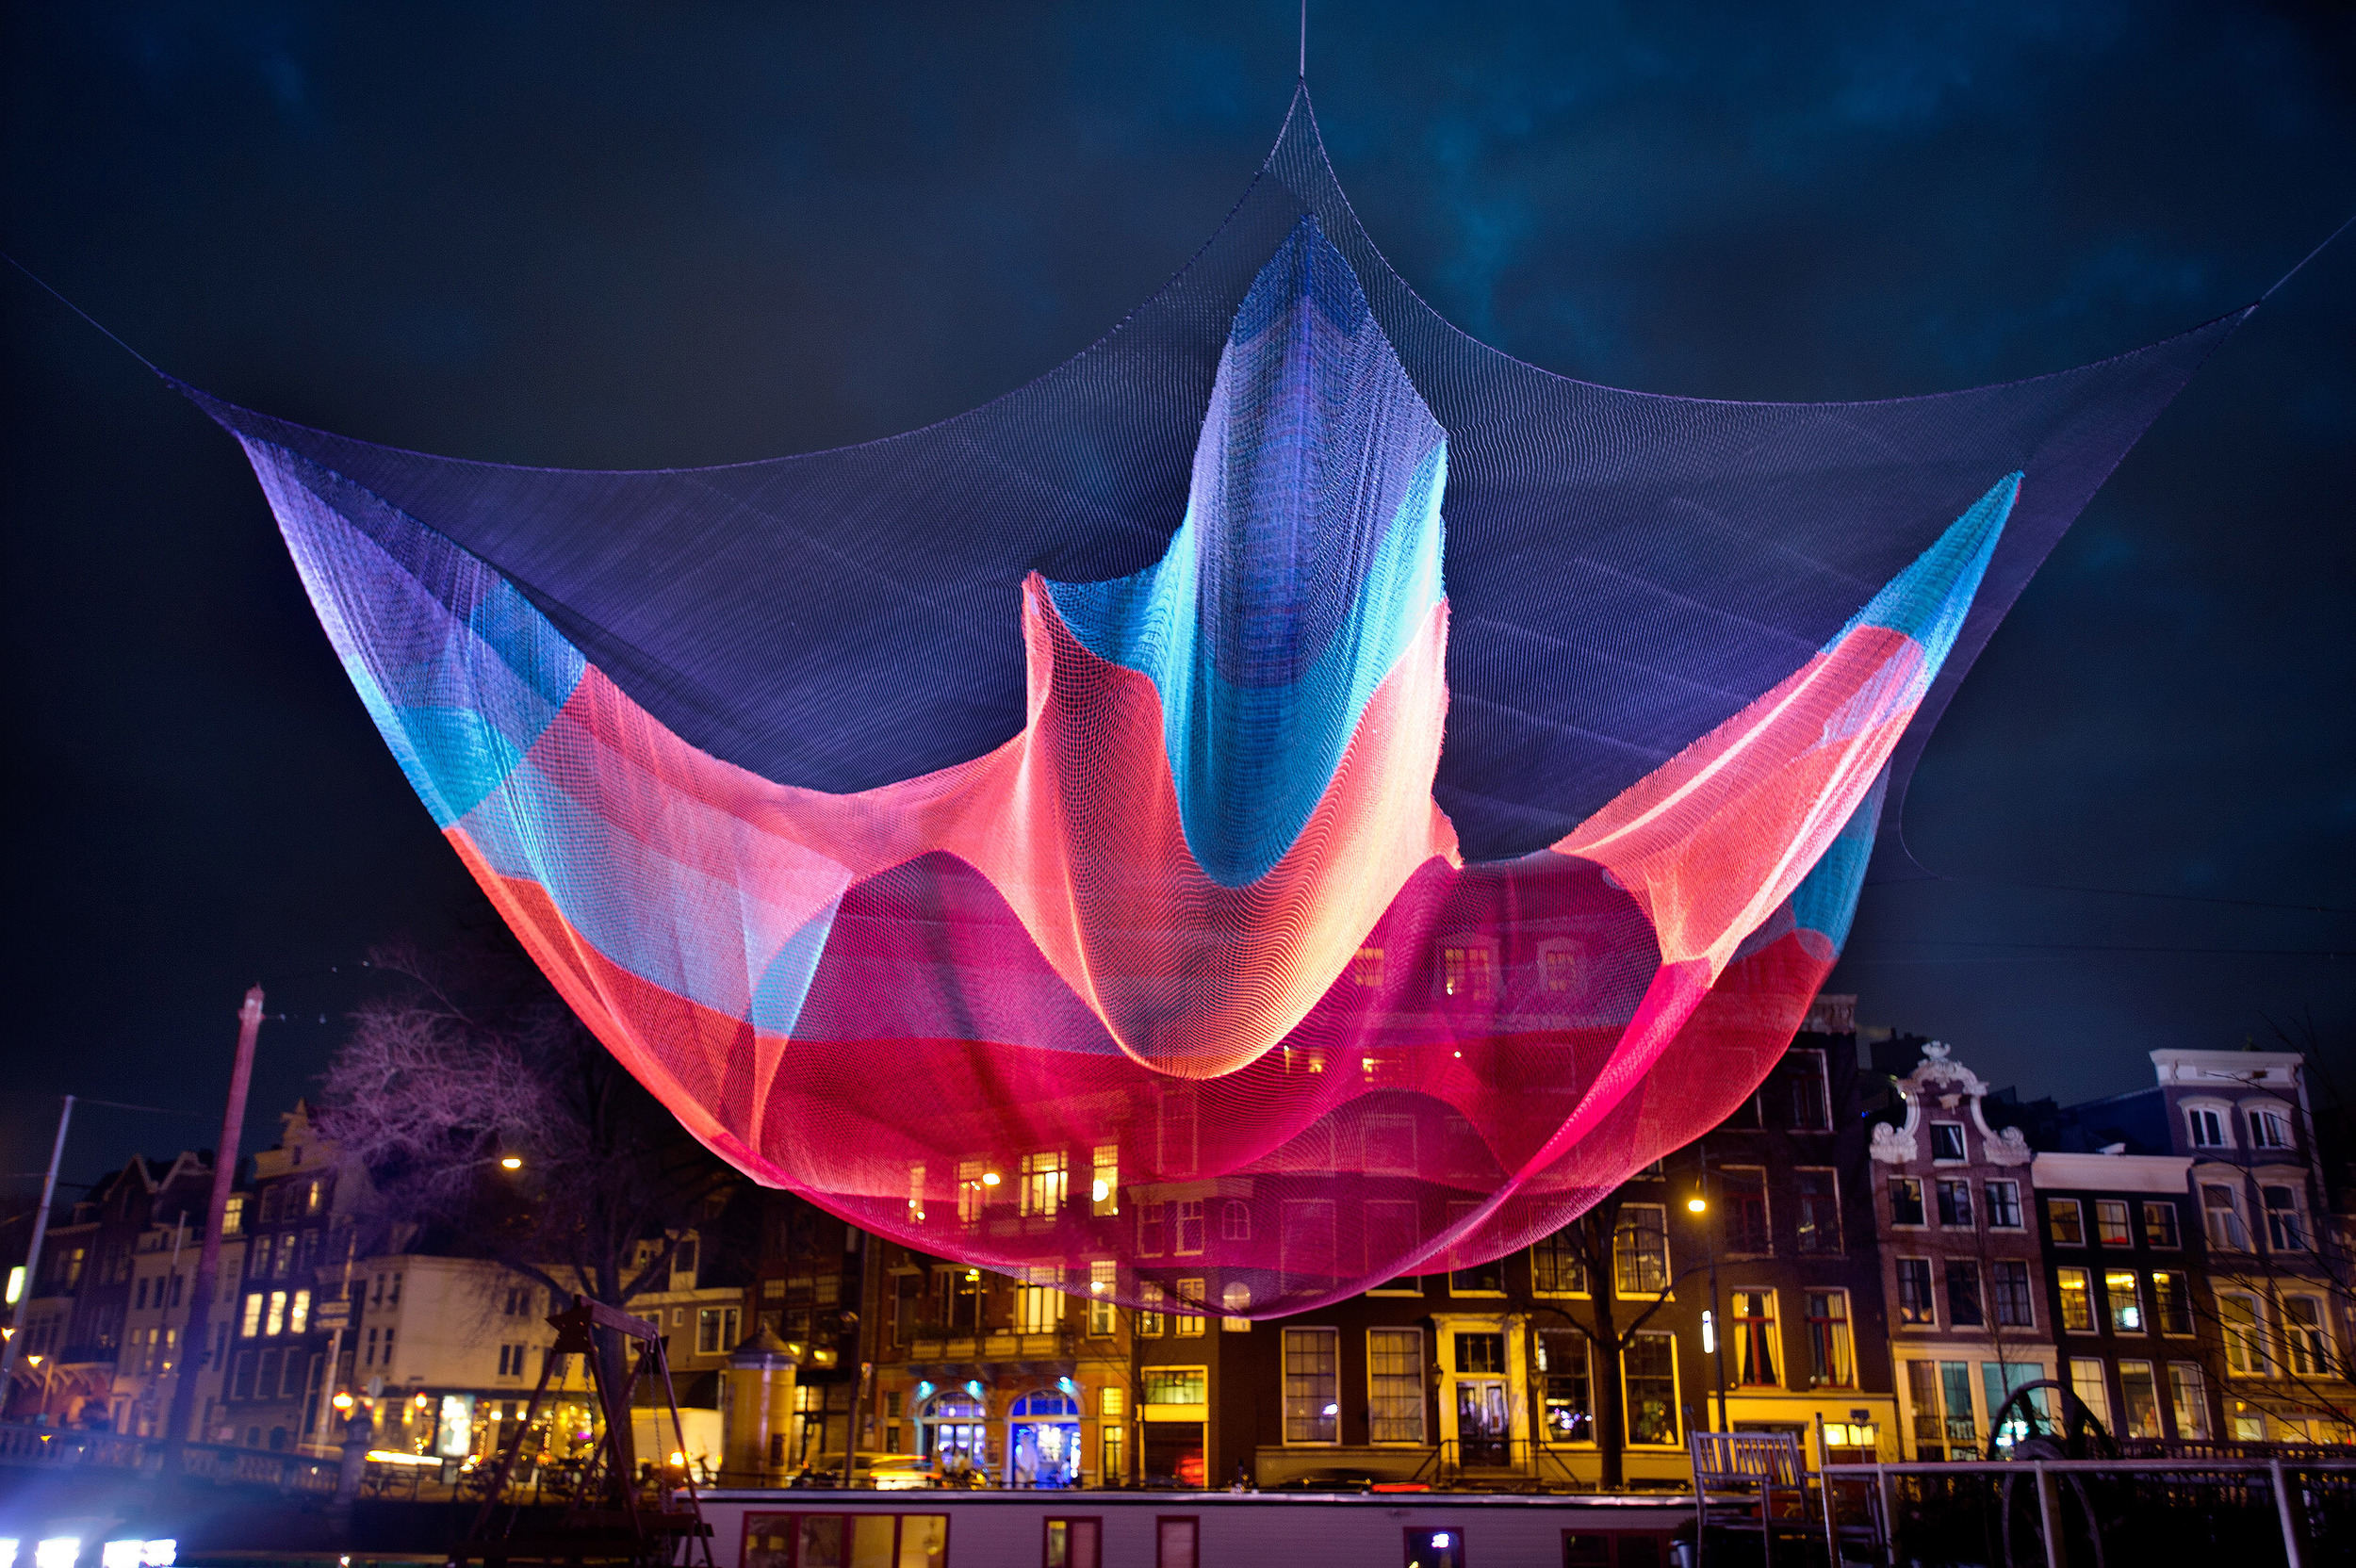 Amsterdam Light Festival, 2015